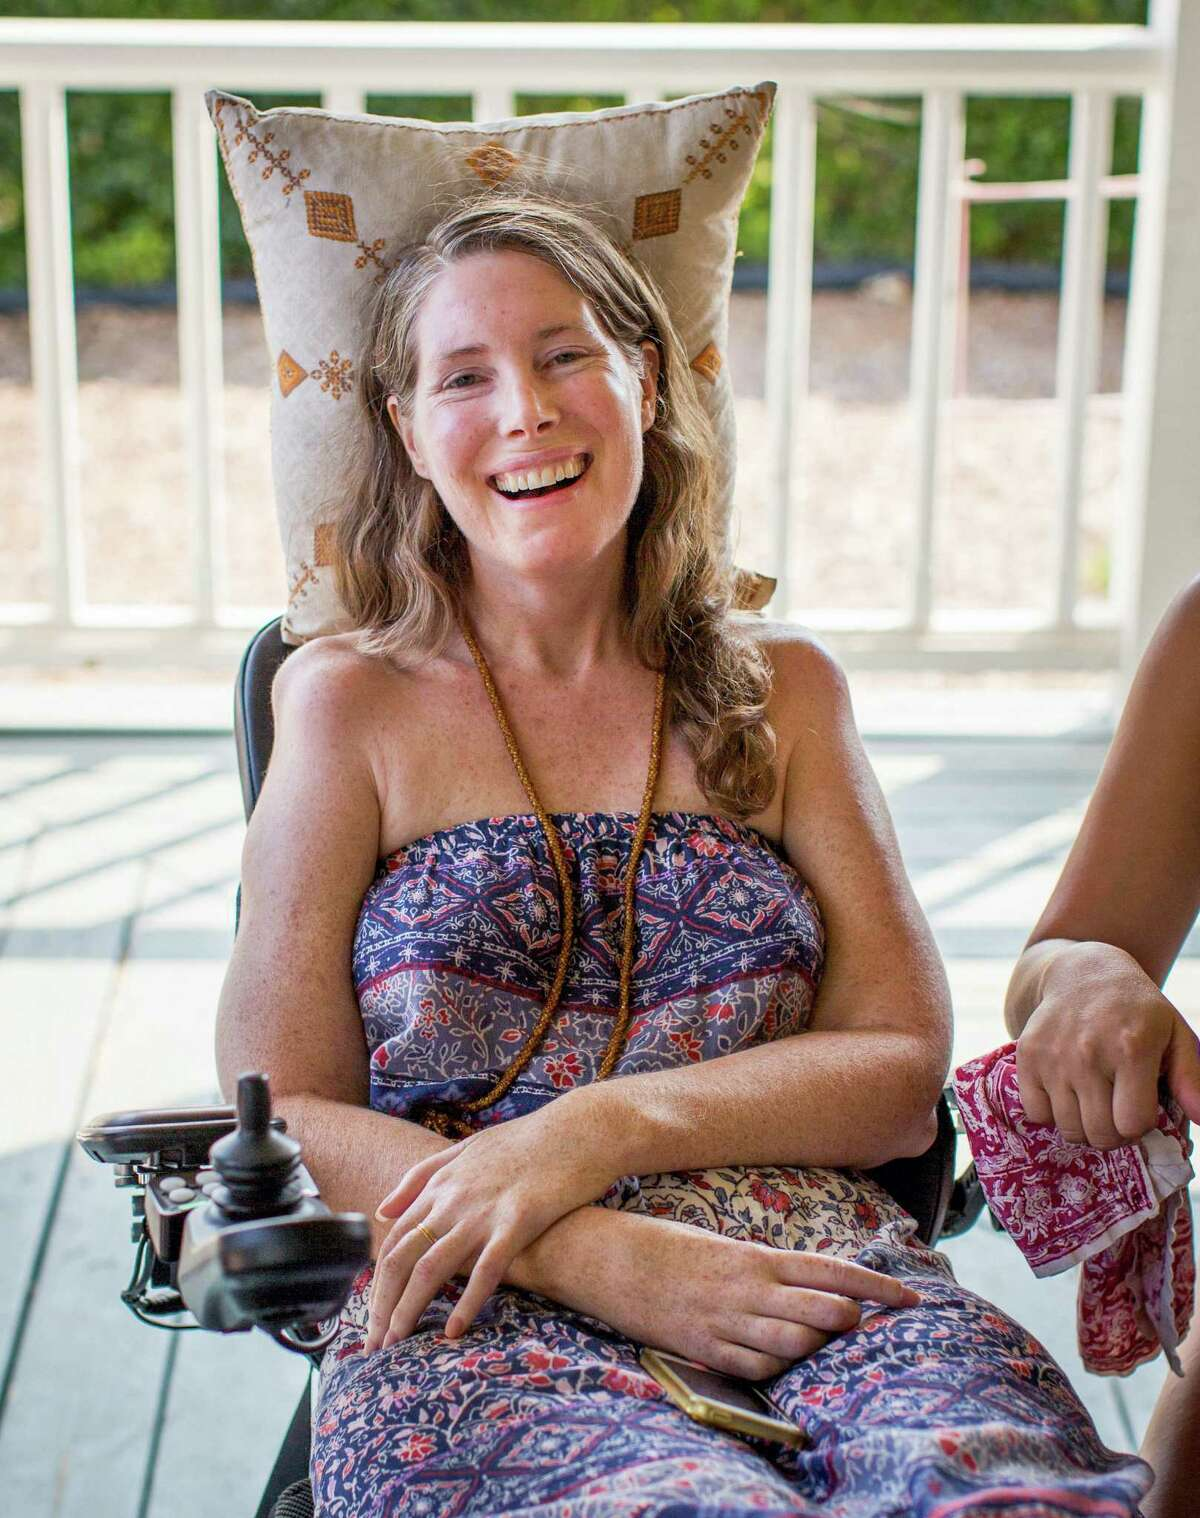 Betsy Davis smiles during a going away party with her family and friends in Ojai.